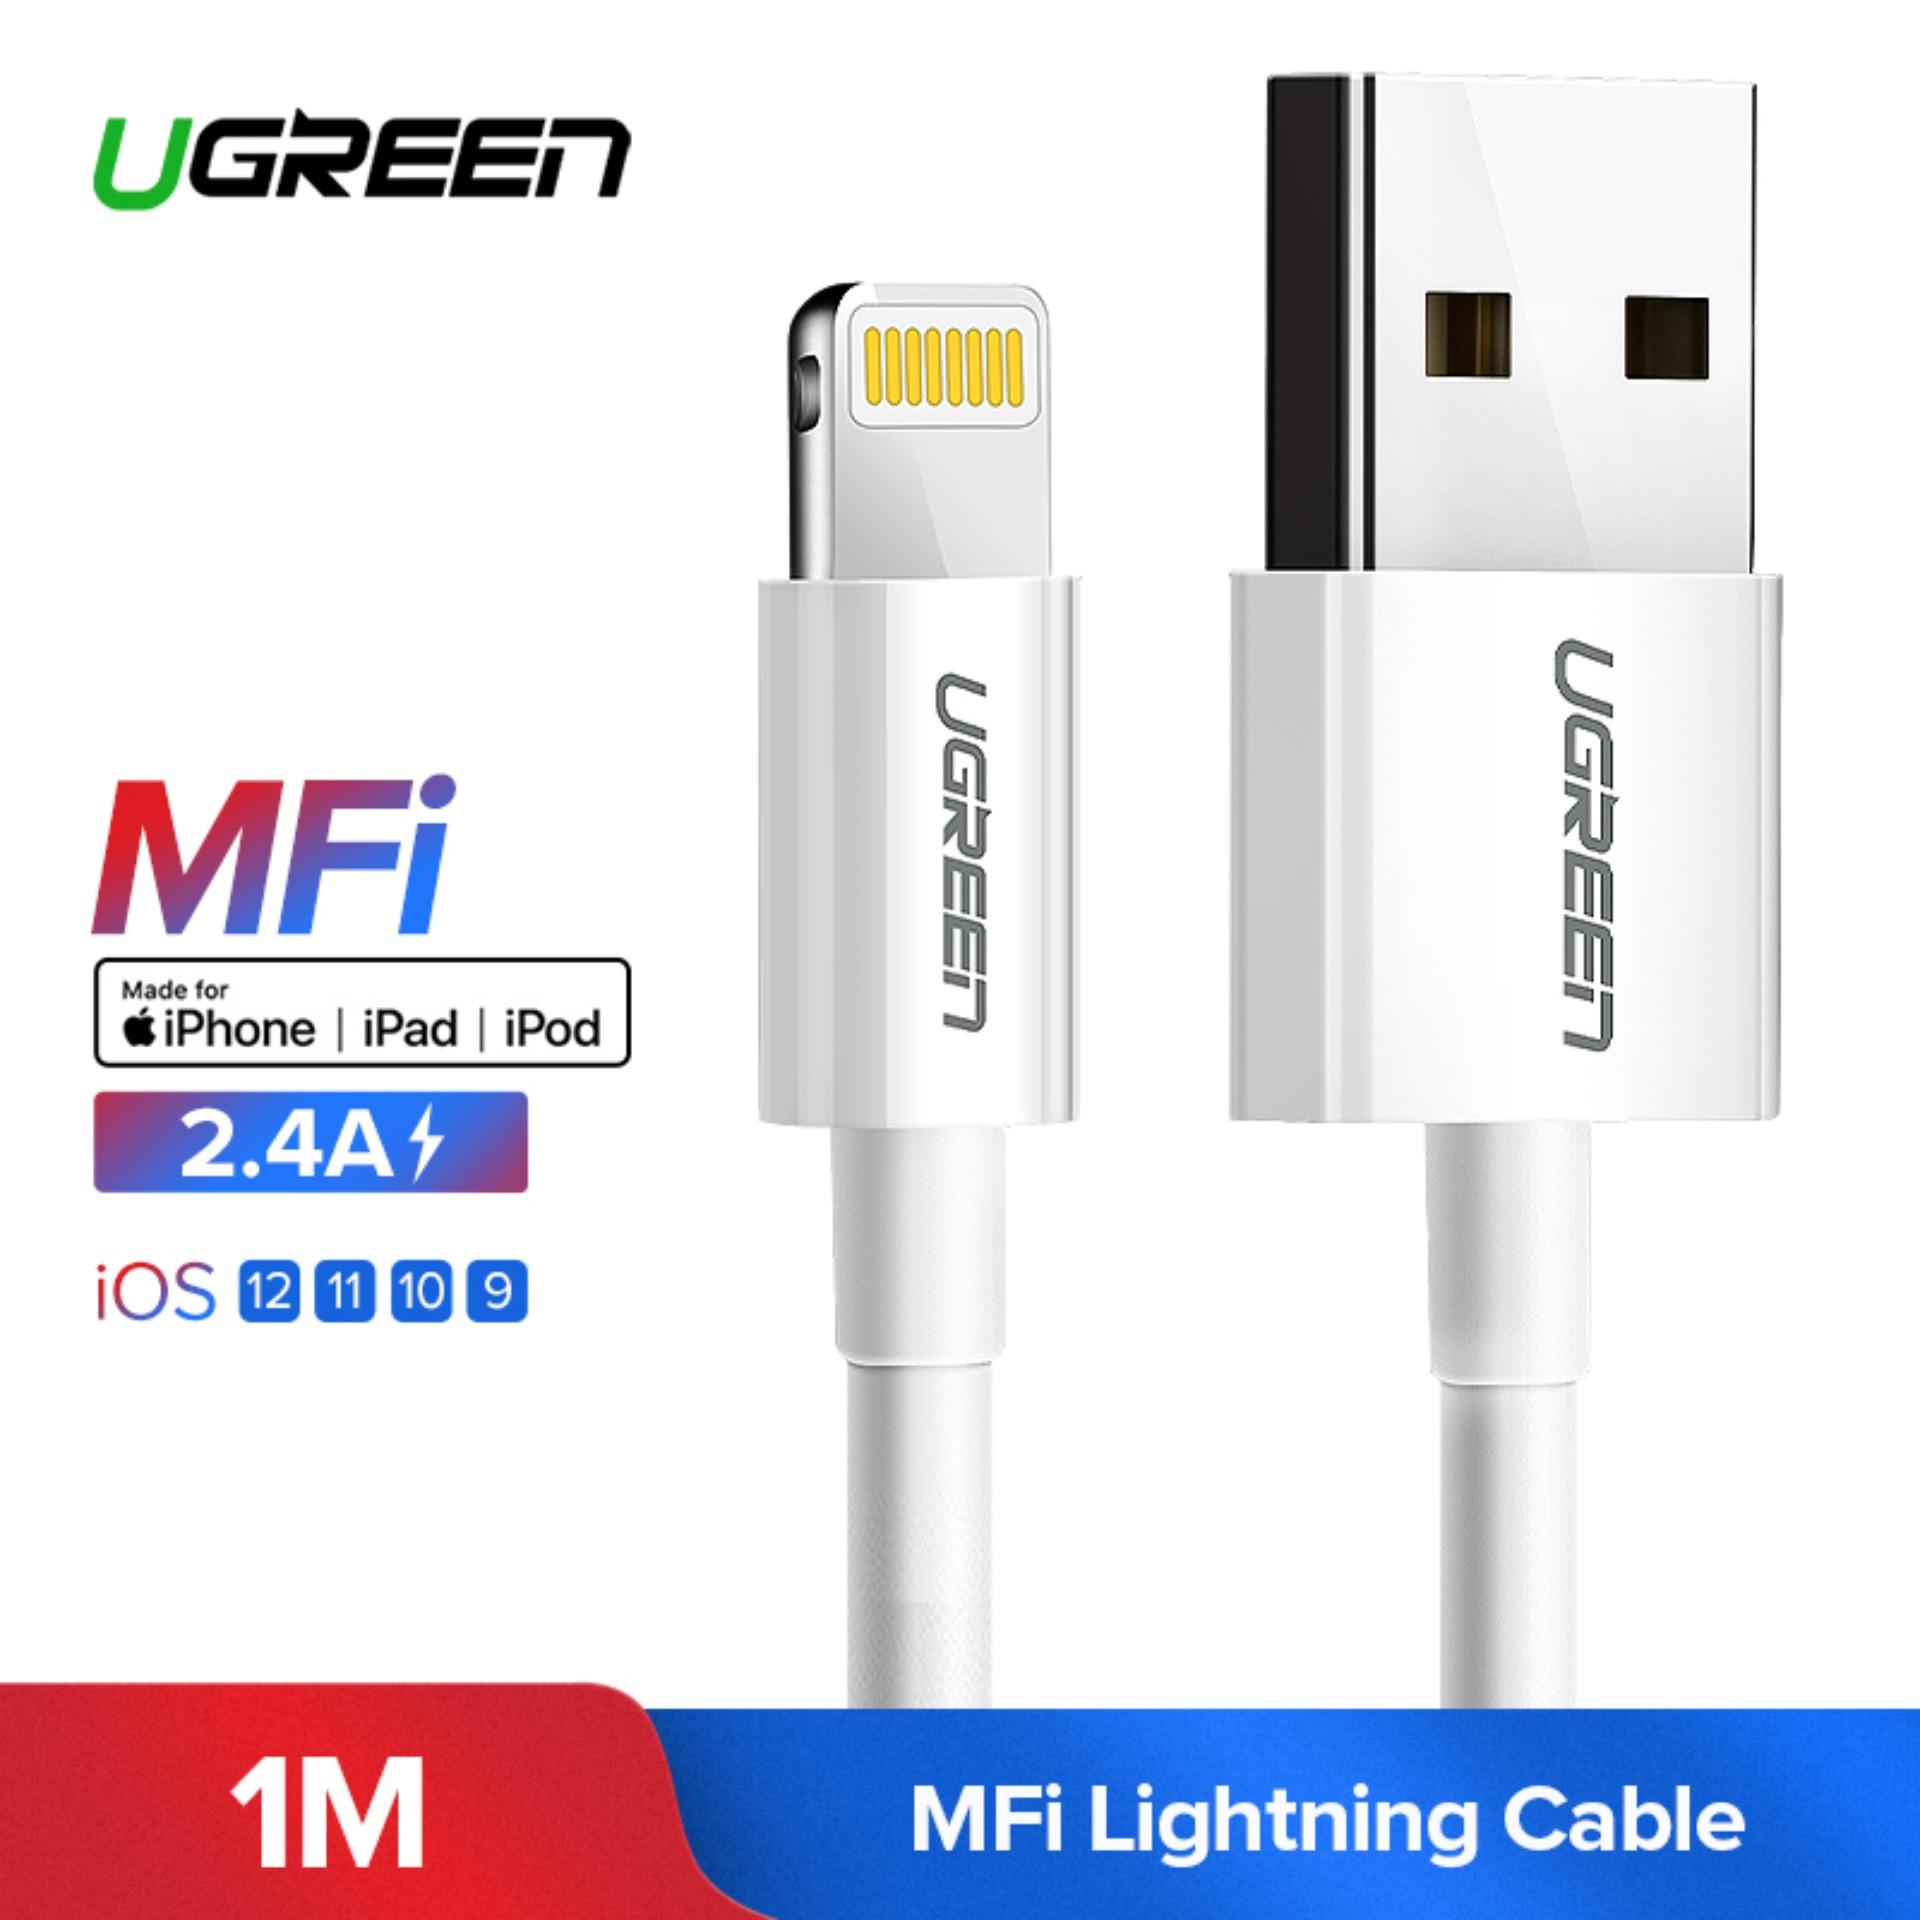 UGREEN Original Kabel 1Meter lightning MFi Kabel Fast Charging Data Cable for Apple iPhone 5s, iPhone 6s, iPhone X, iPhone 7plus, iPhone 8plus, iPhone X MAX,  iPod iPad White